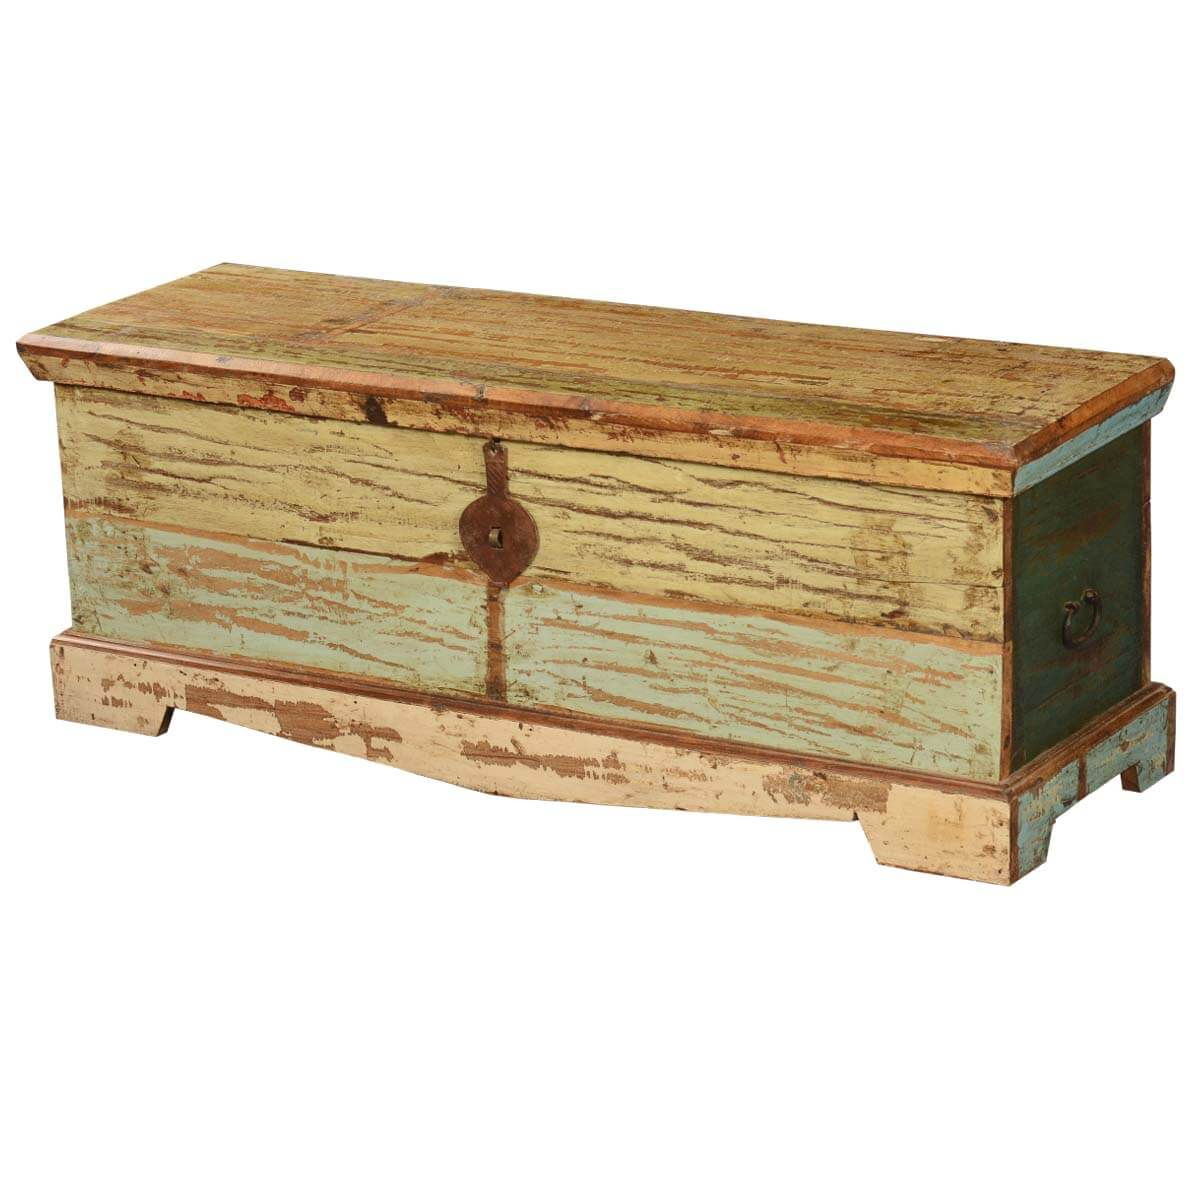 Attic Treasure Reclaimed Wood Coffee Table Chest Storage Trunk